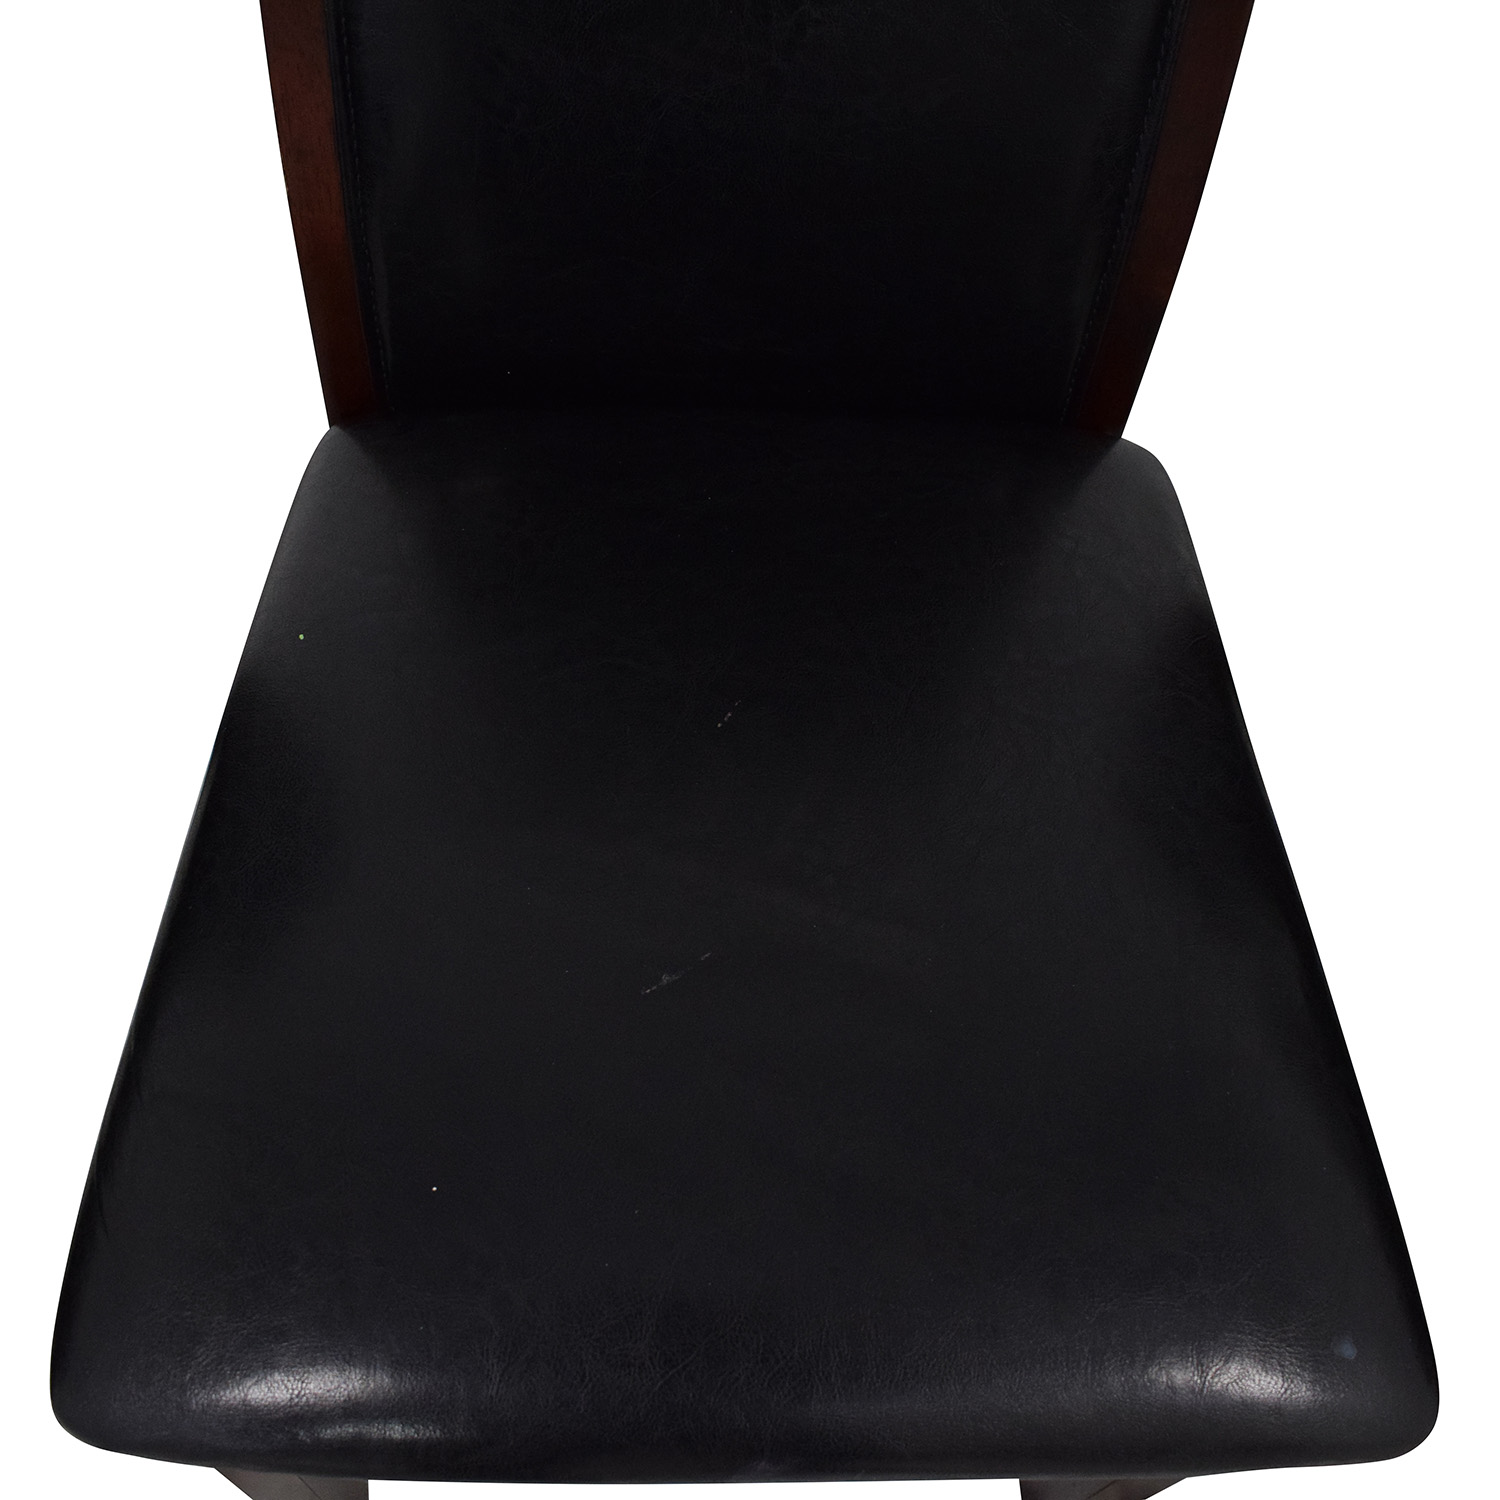 Coaster Dining Chairs sale